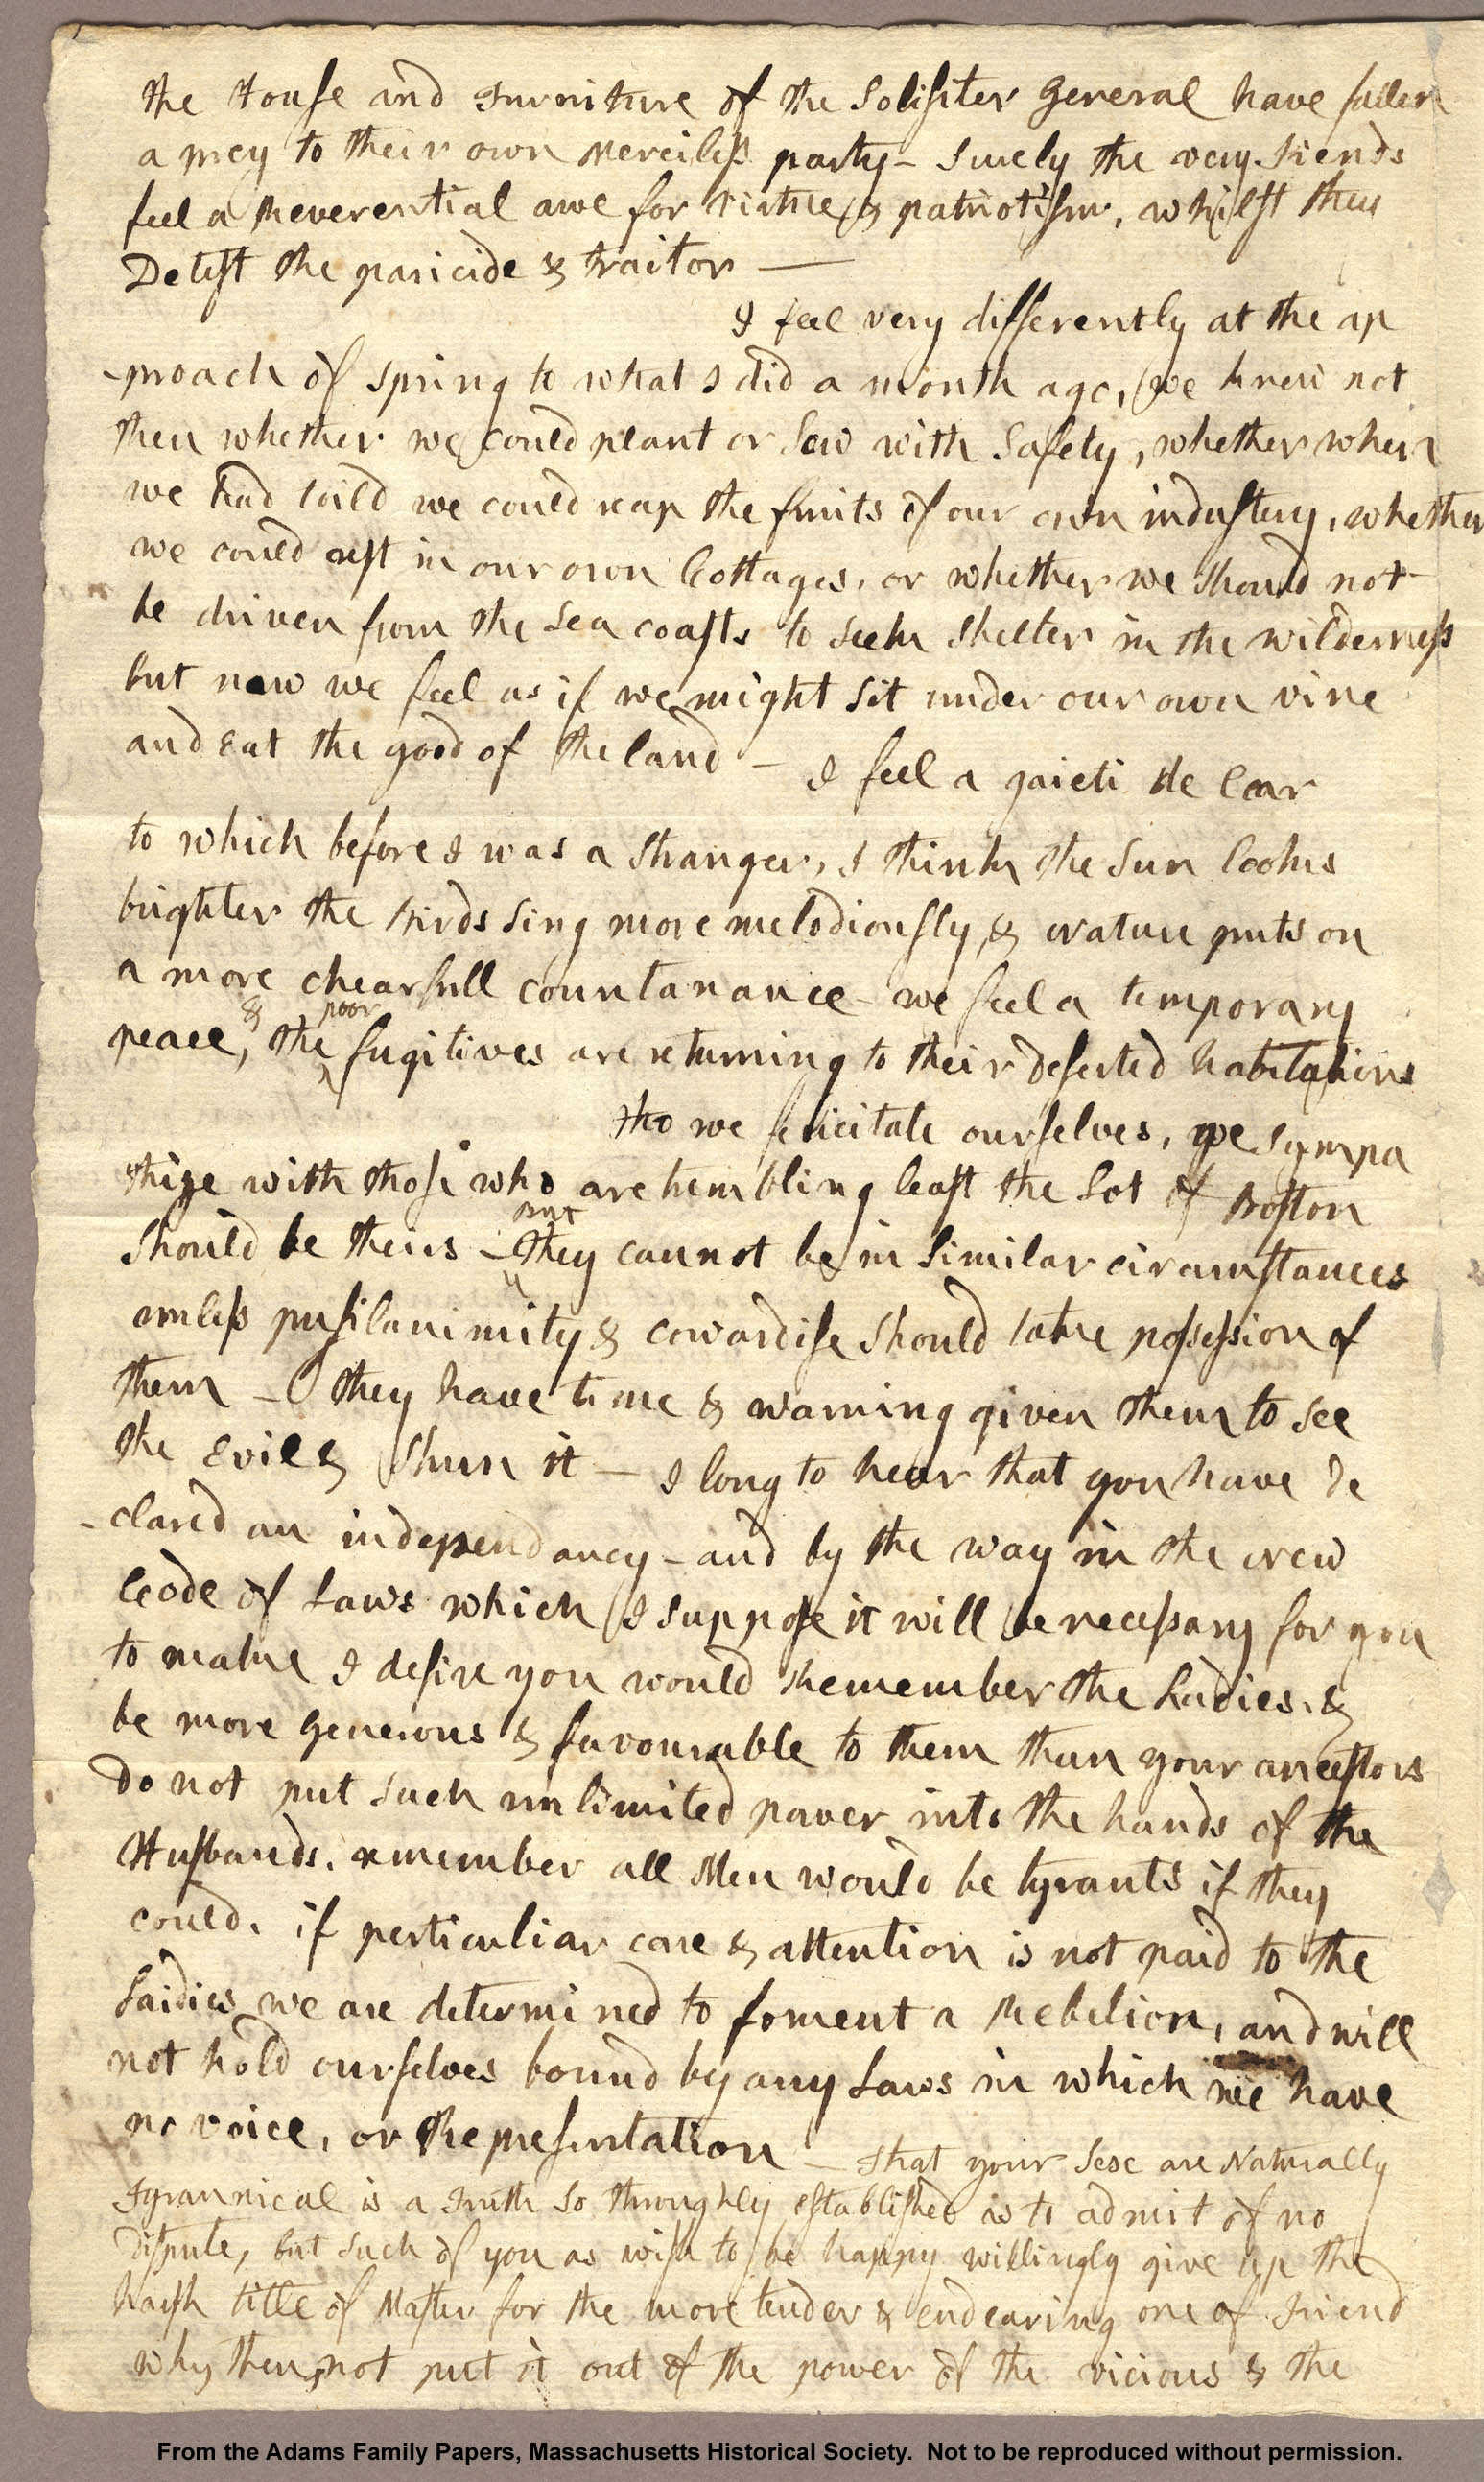 """Letter from Abigail Adams to John Adams, 31 March 1776. """"I desire you would Remember the Ladies, and be more generous and favourable to them than your ancestors,"""" Abigail Adams famously wrote to her husband as he served in the Continental Congress. Image courtesy of the Massachusetts Historical Society."""